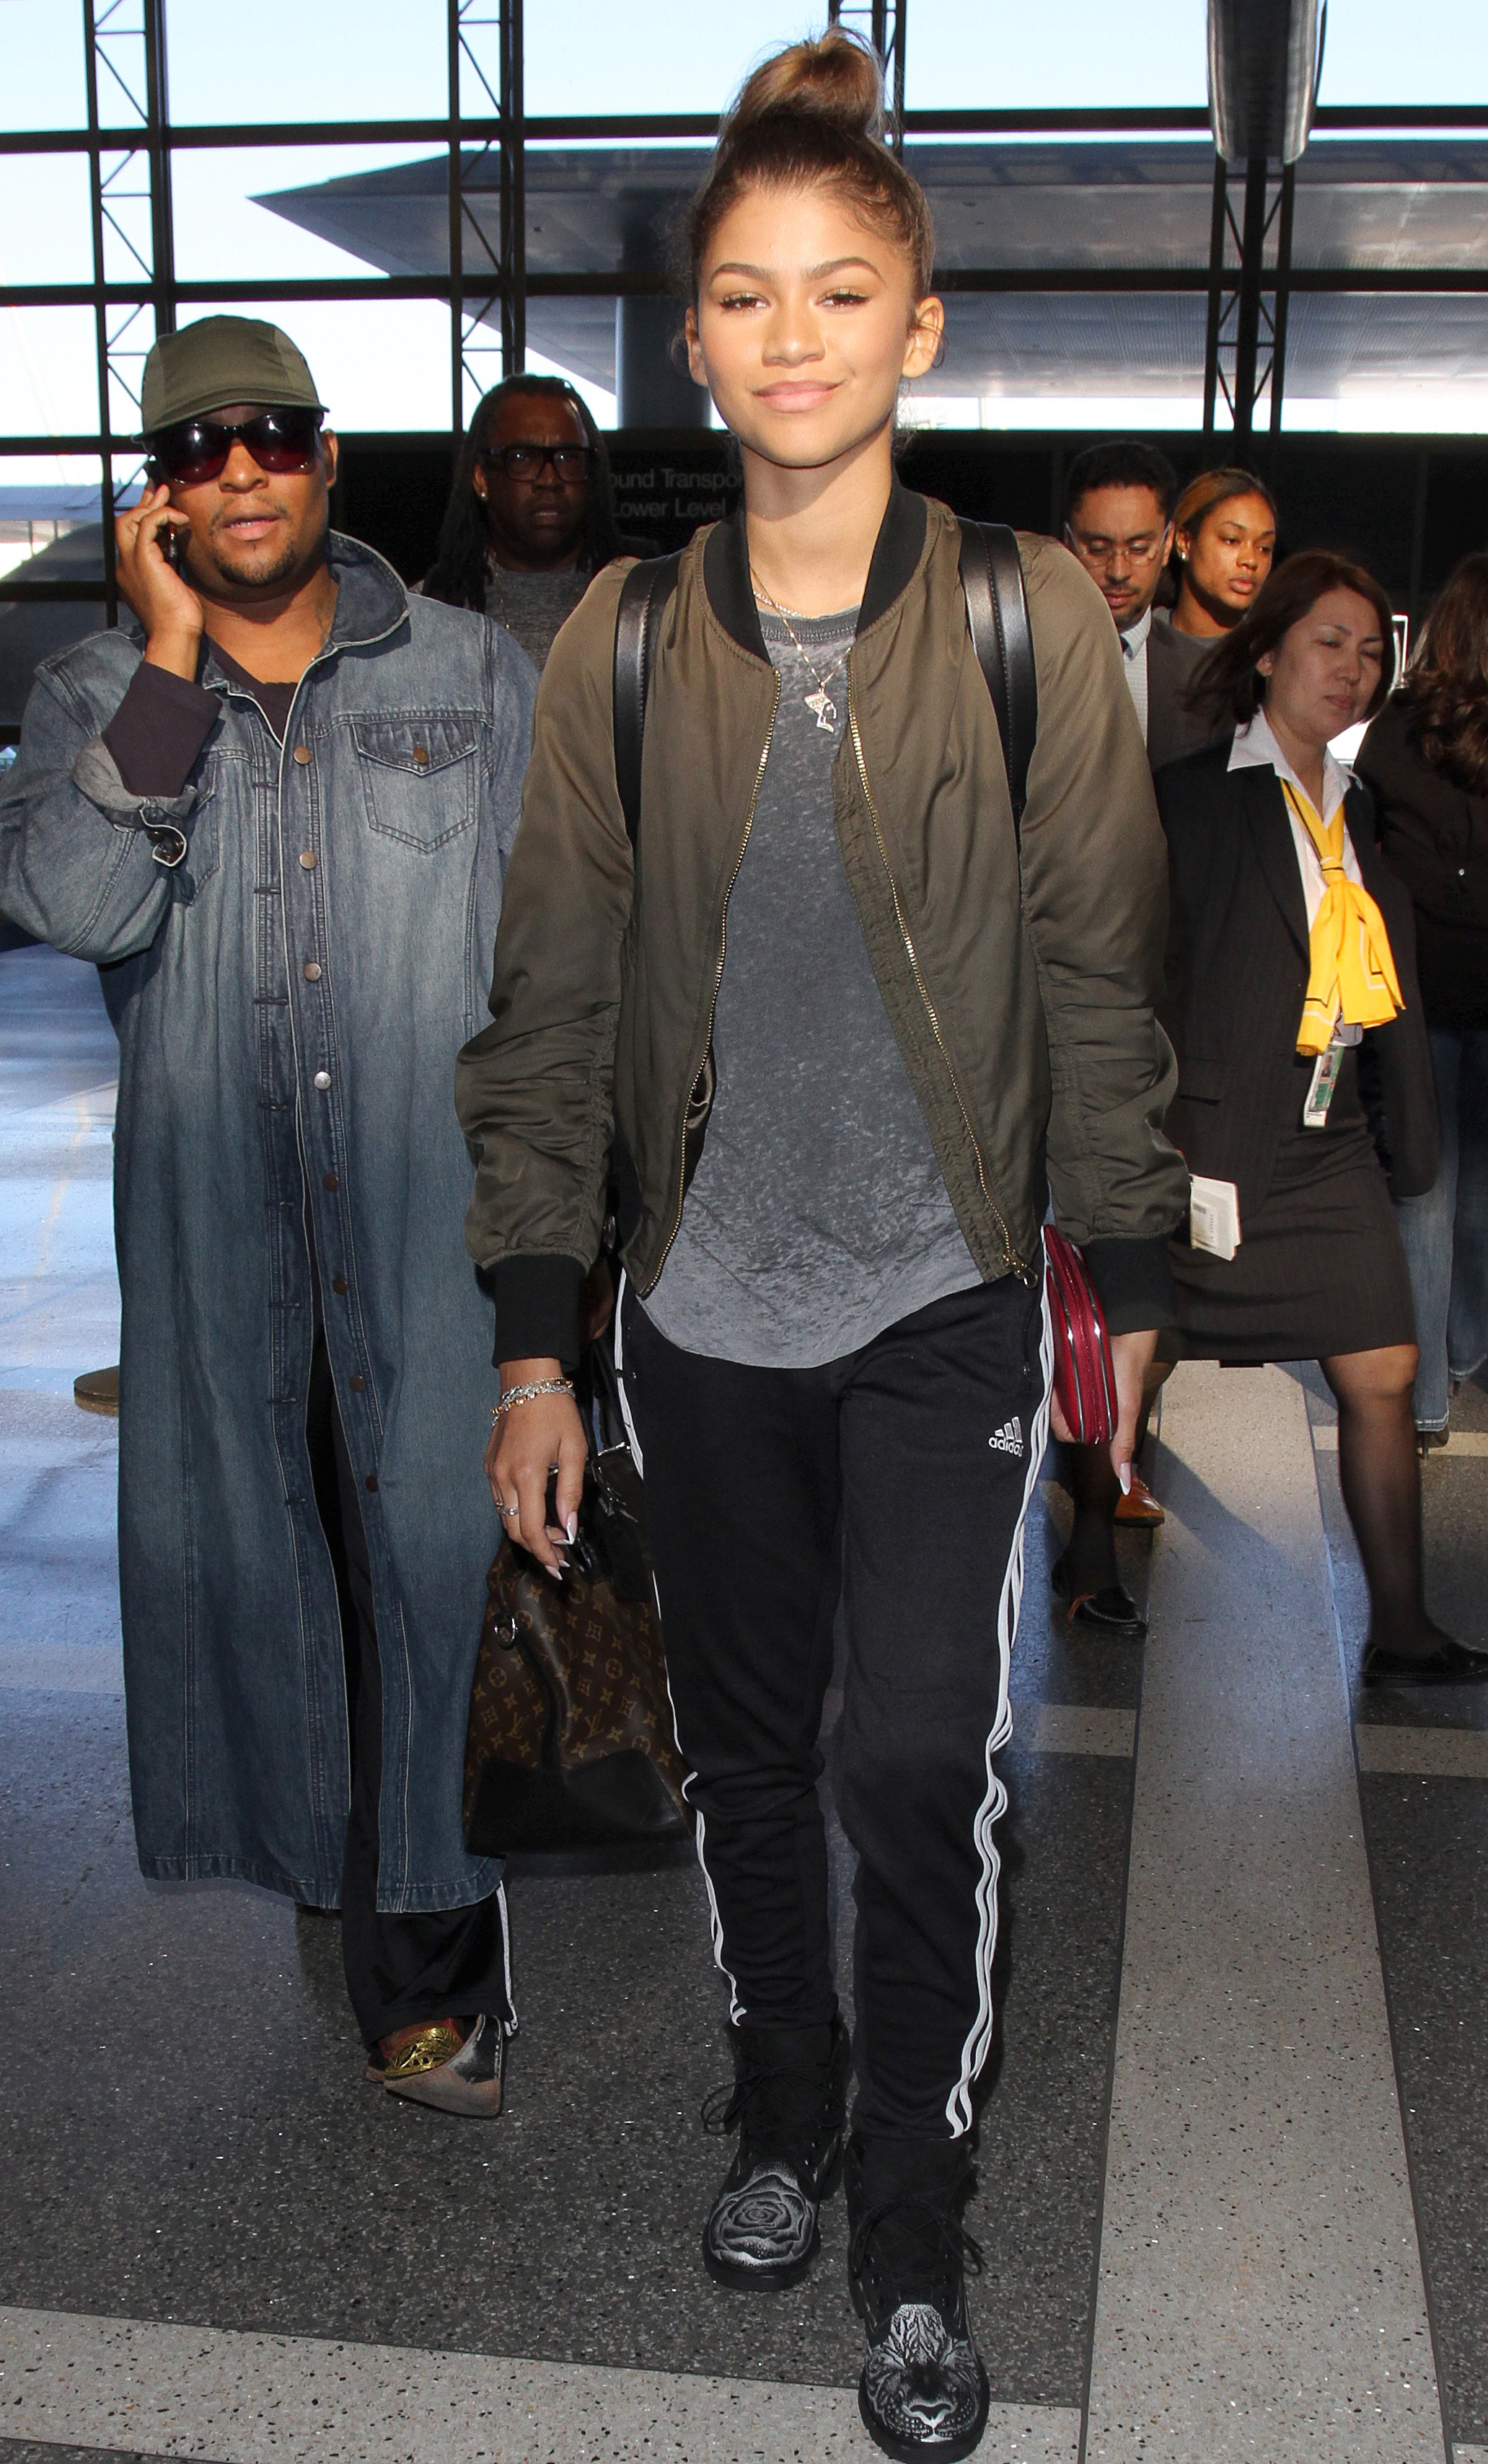 Zendaya is spotted as she arrives at LAX